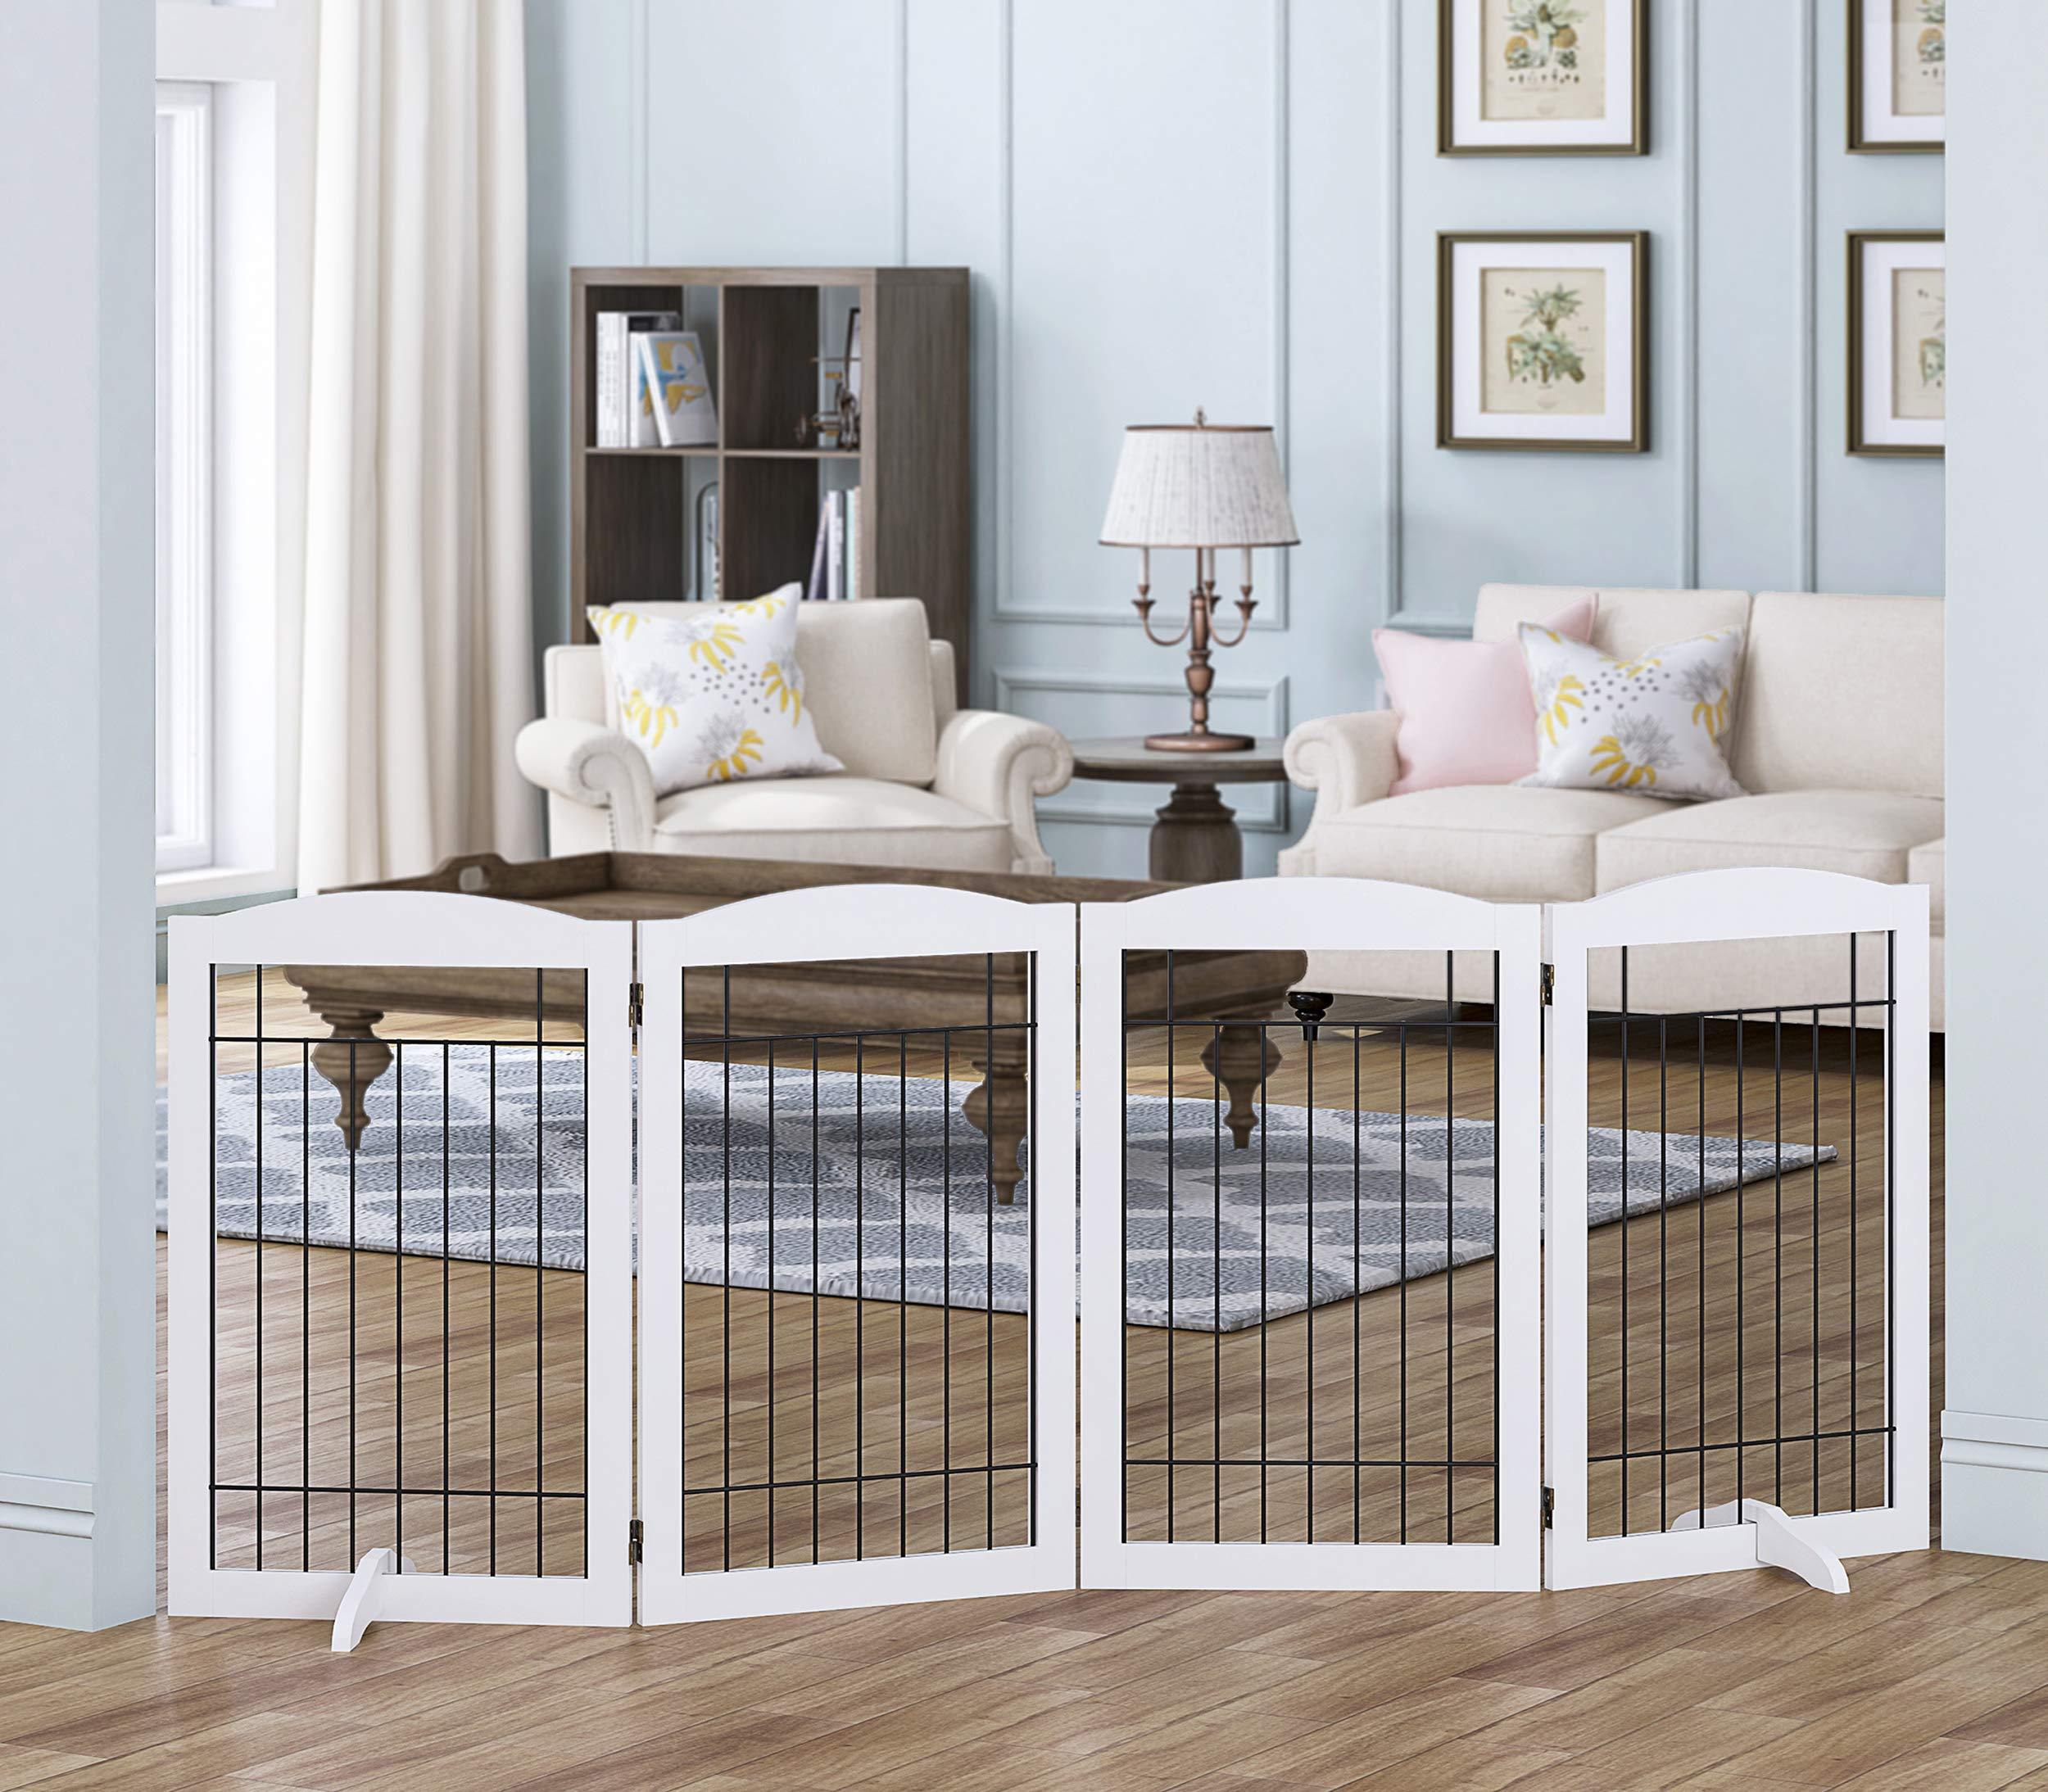 Spirich Free Standing Foldable Wire Pet Gate for Dogs, 80 inches Extra Wide, 30 inches Tall 4 Panels Dog Gate for the Houes, Doorway, Stairs, Pet Puppy Safety Fence,Set of Support Feet Included, White by Spirich